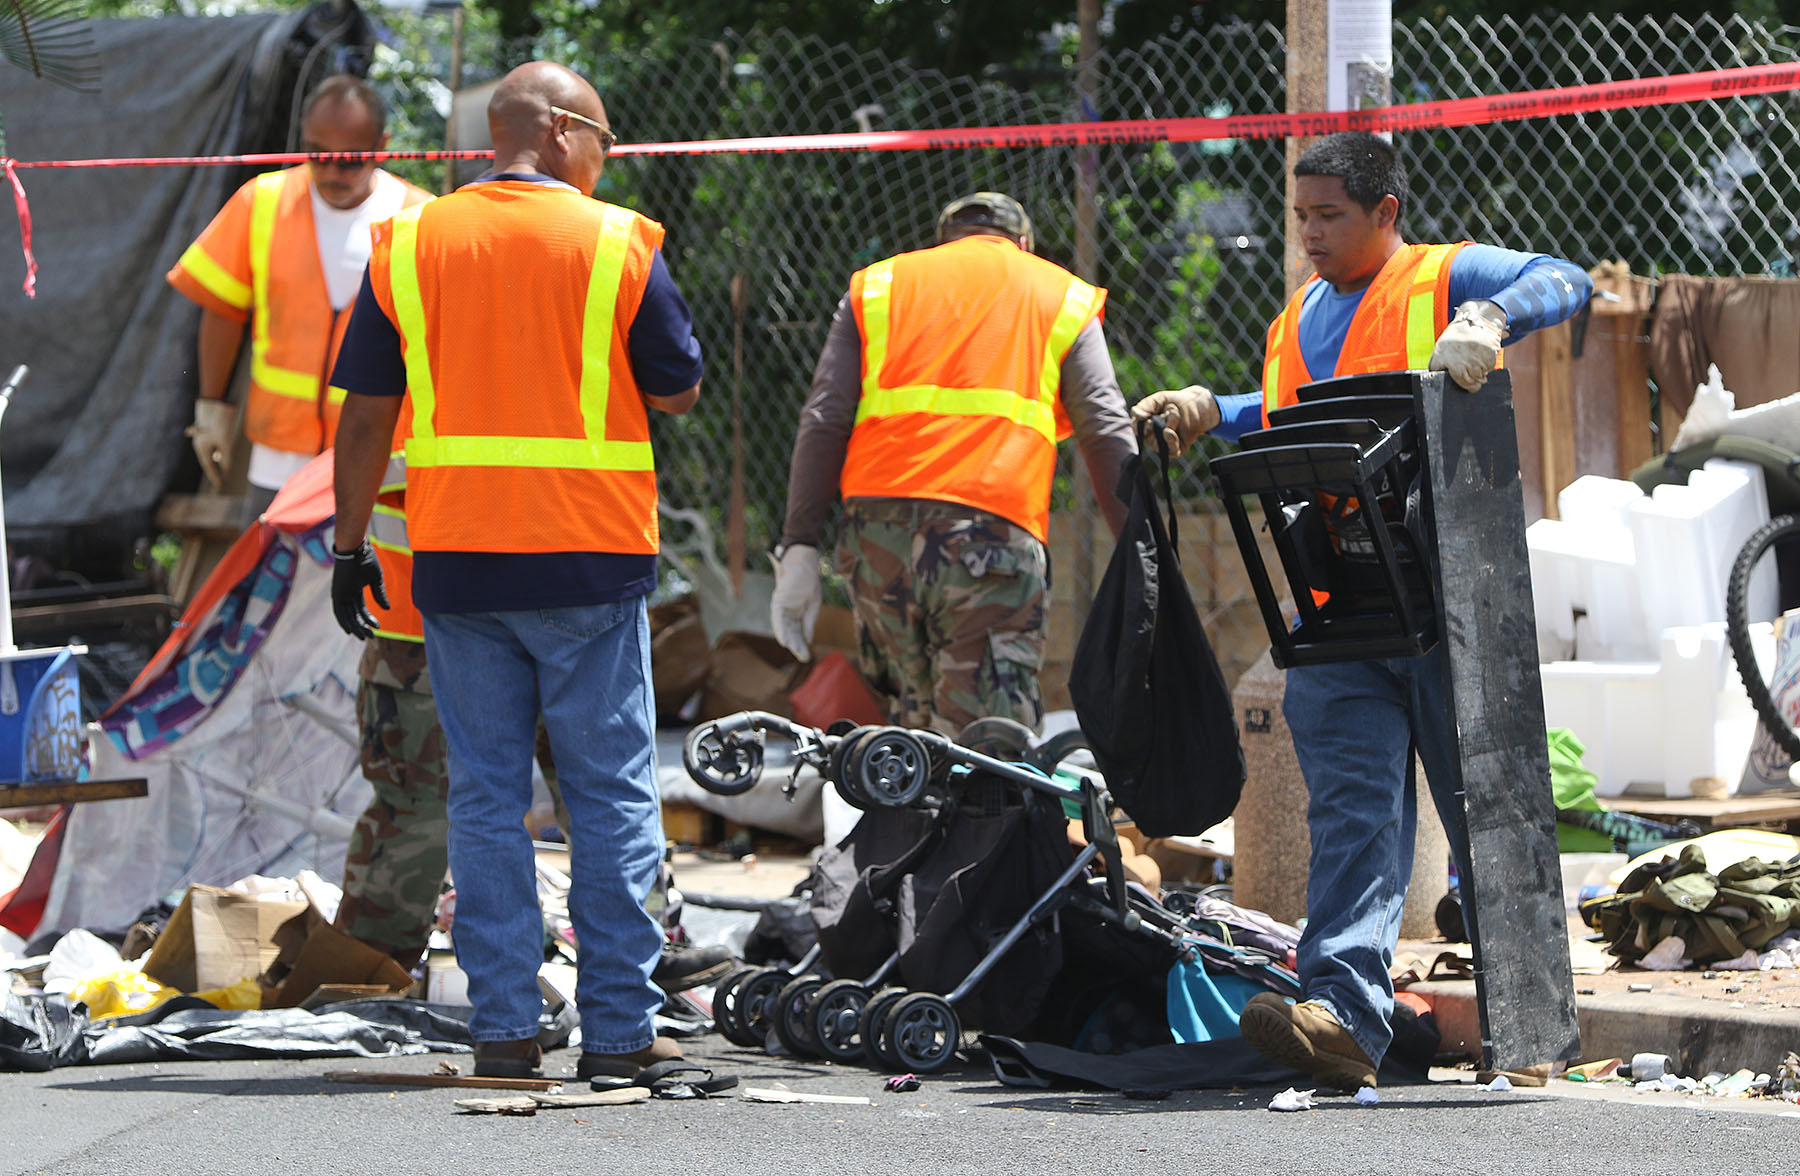 <p>A city maintenance crew sorts through trash and the possessions of the homeless near Keawe and Ilalo streets Monday during another sweep of a Kakaako homelessencampment. On Tuesday, a federal judge rejected a request for a temporary restraining order to stop the sweeps.</p>